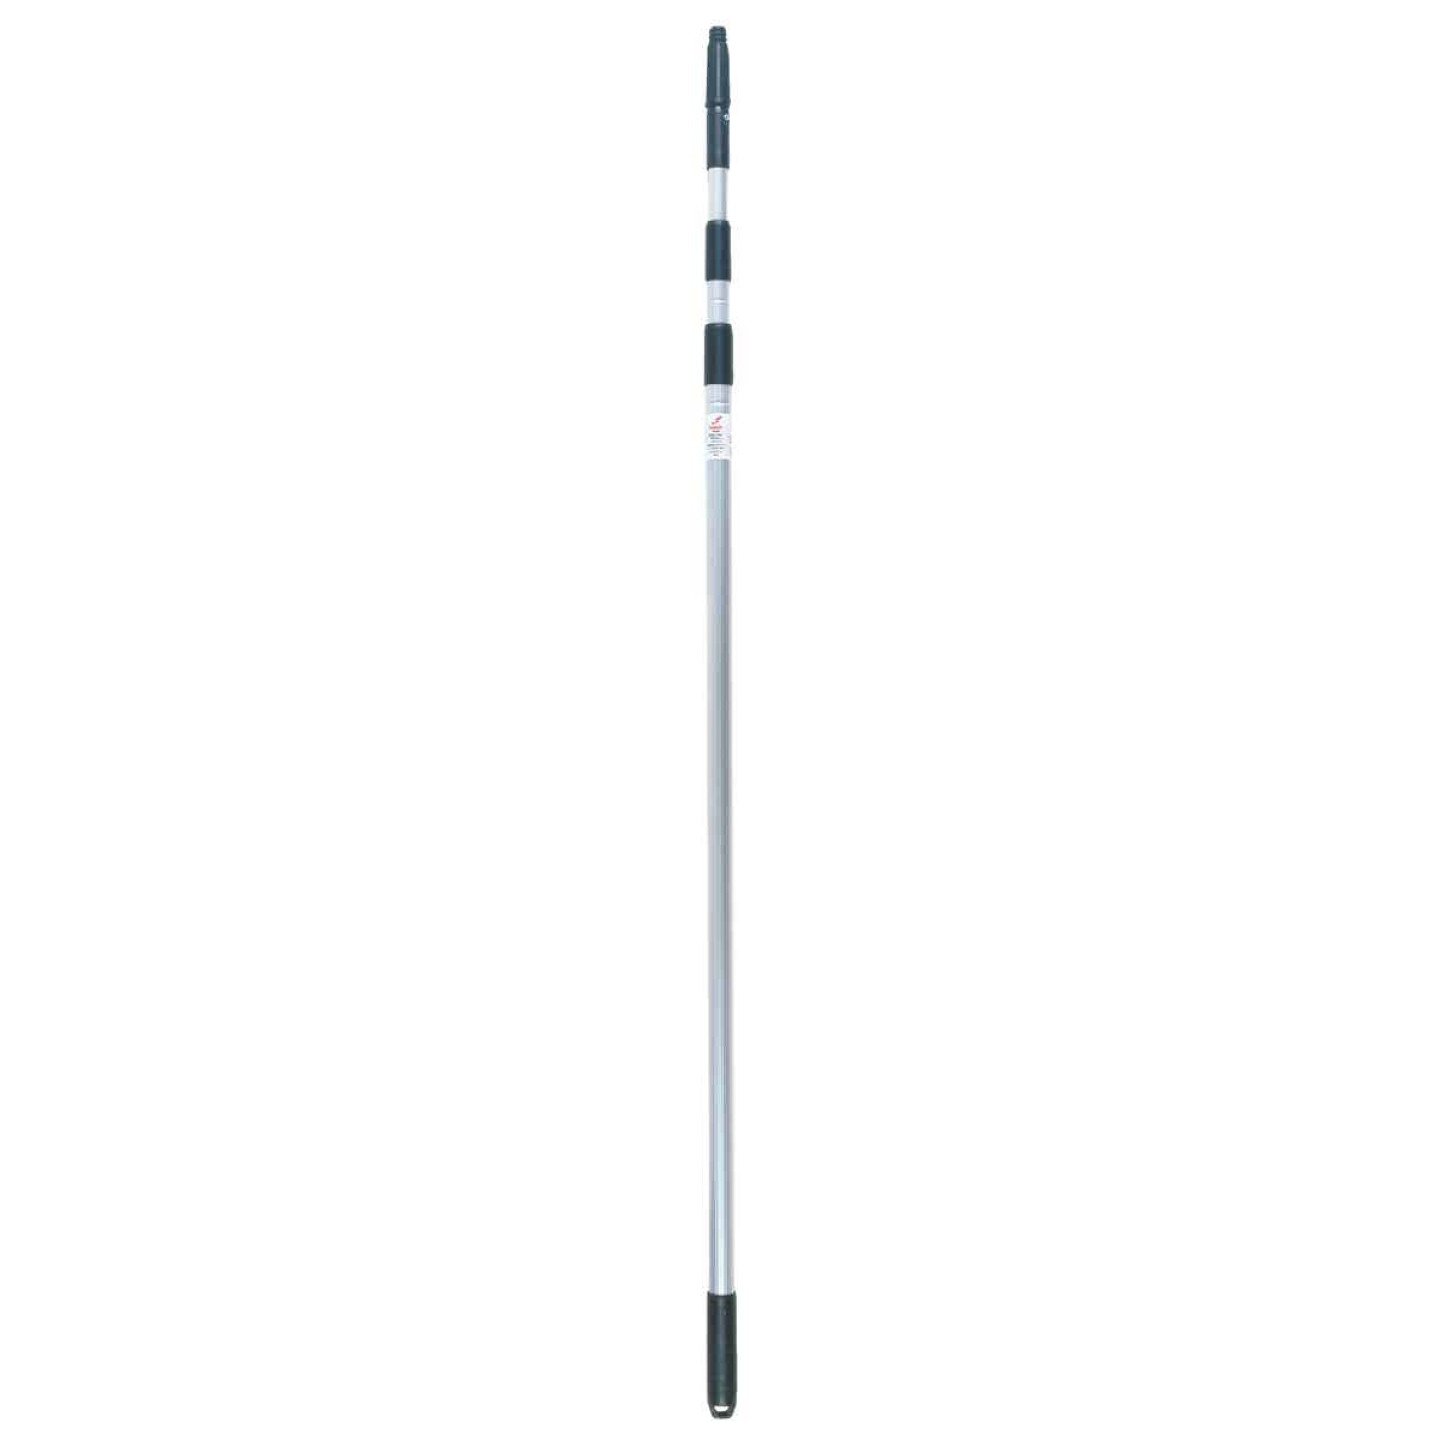 Unger 3-Stage 11 Ft. Silver Aluminum Telescopic Handle Image 1